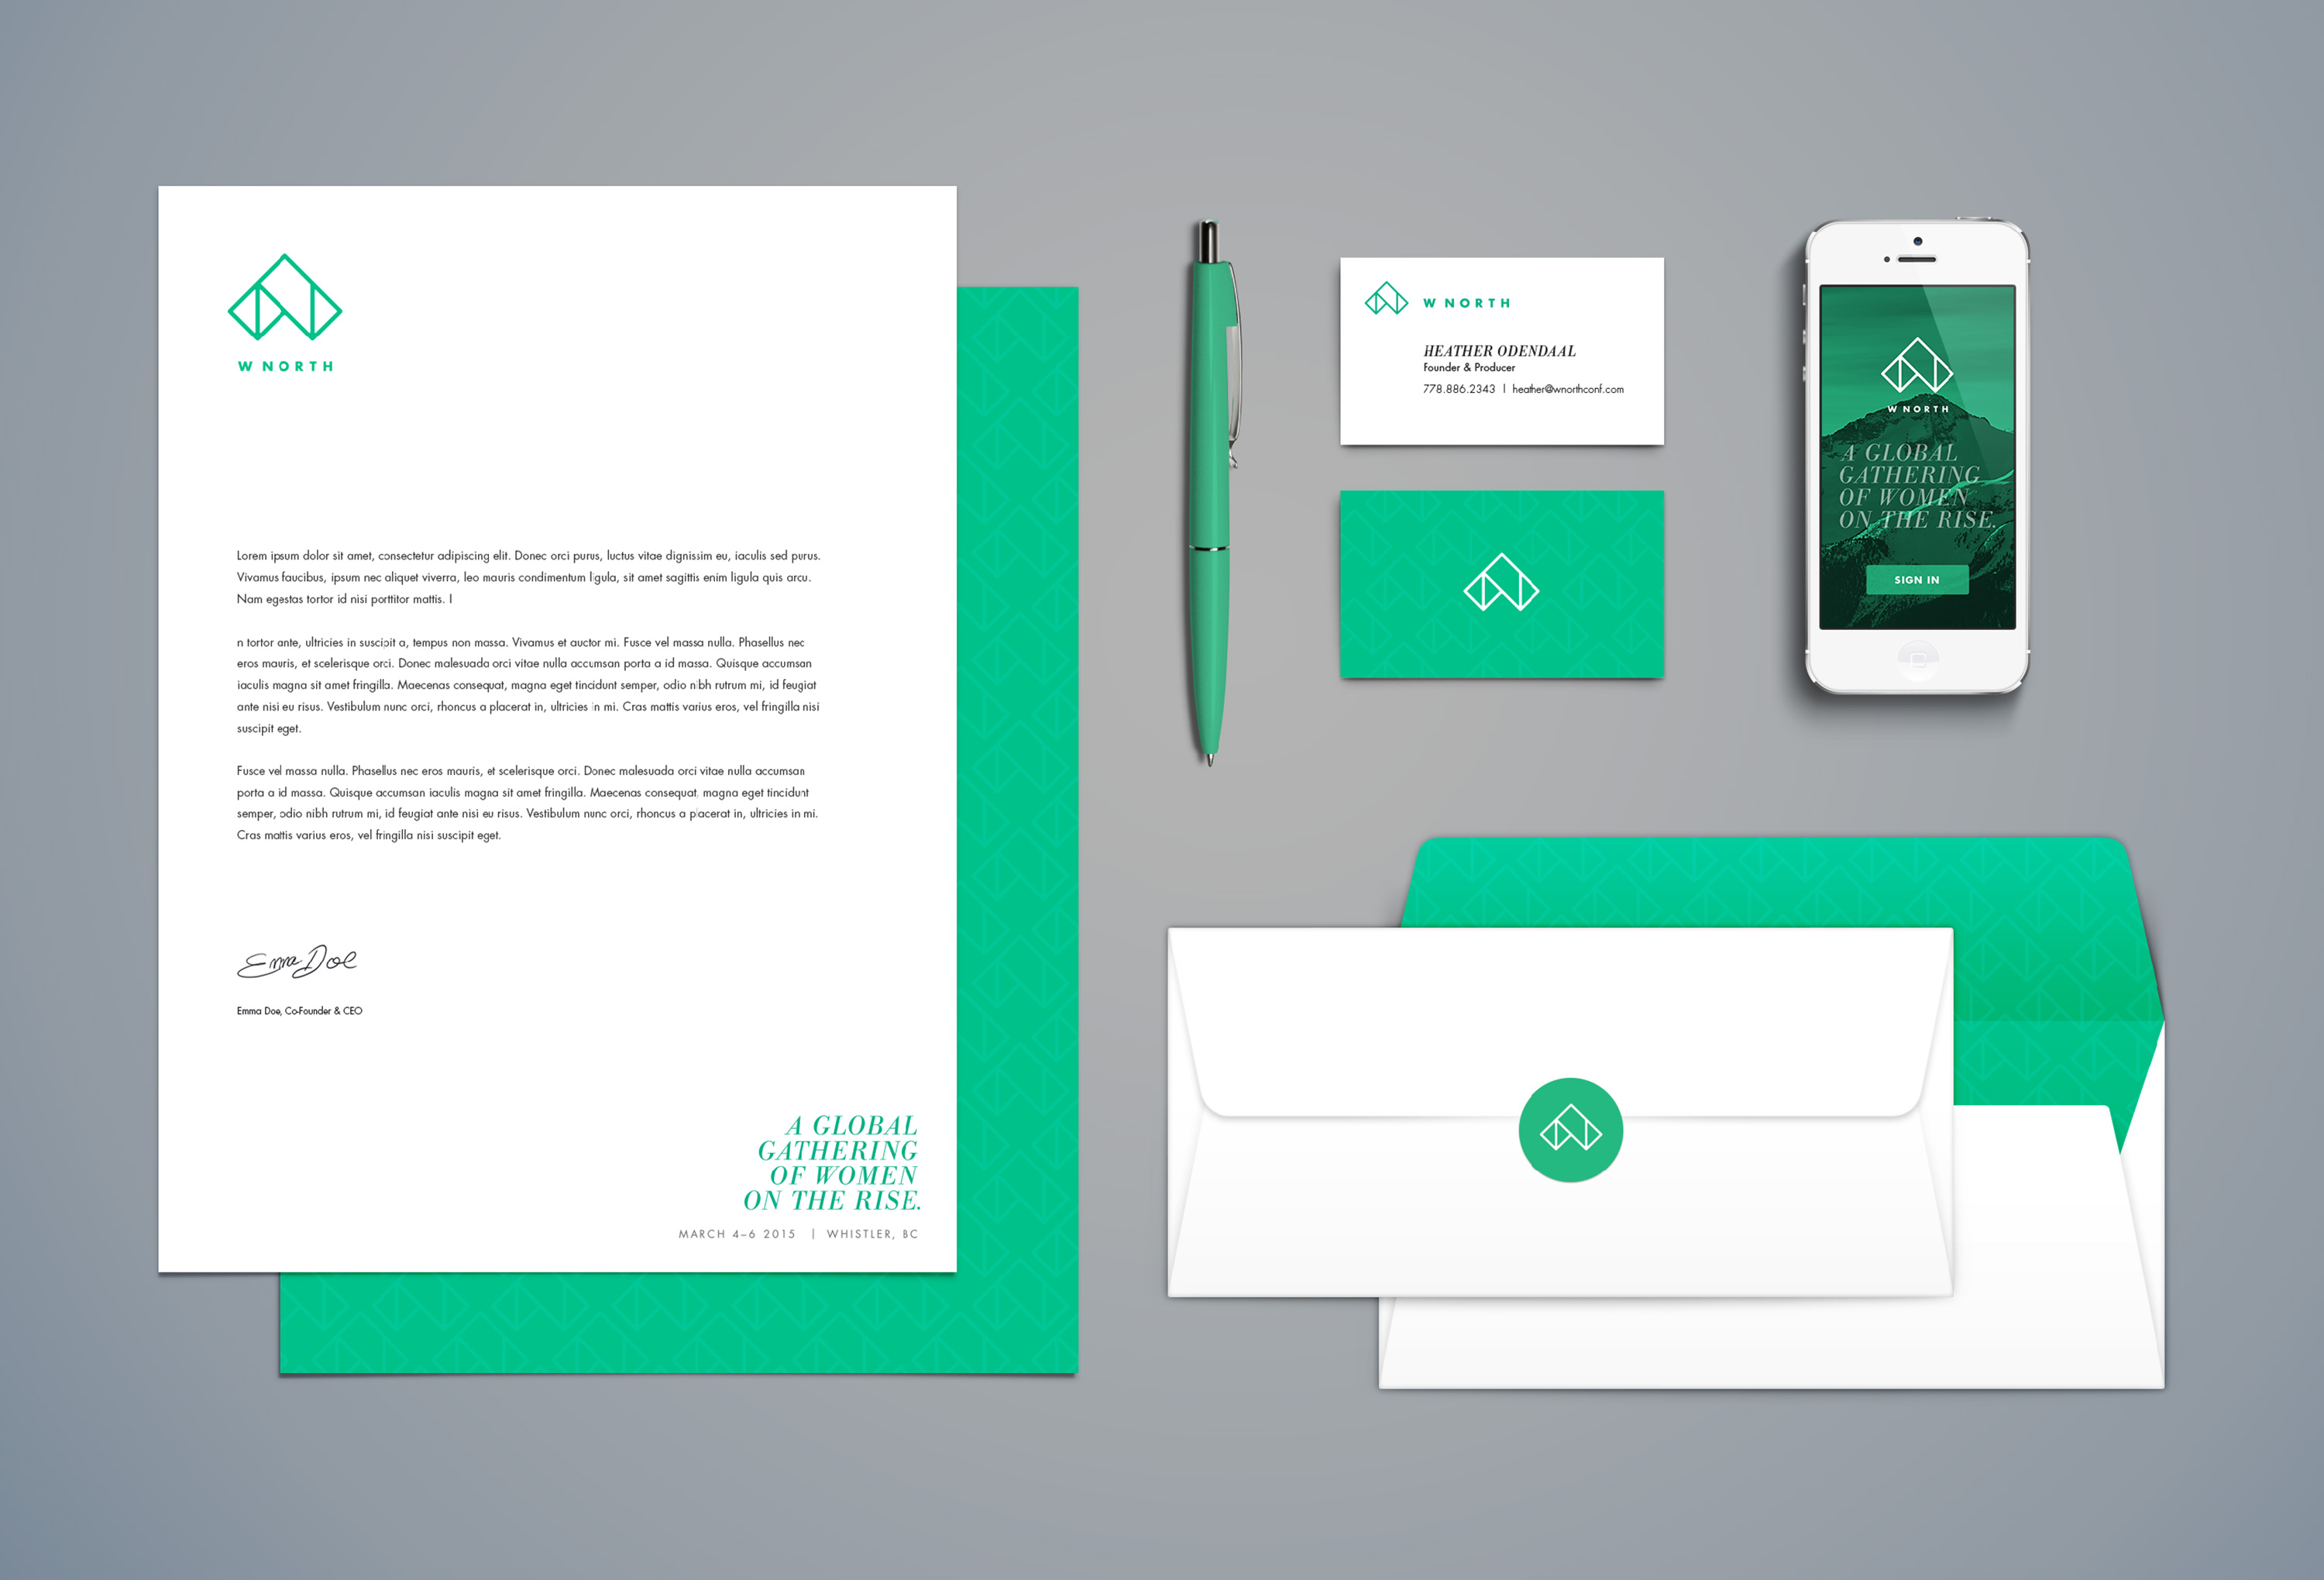 WNORTH_Identity-Mock-Up-Vol4_v1_3000px